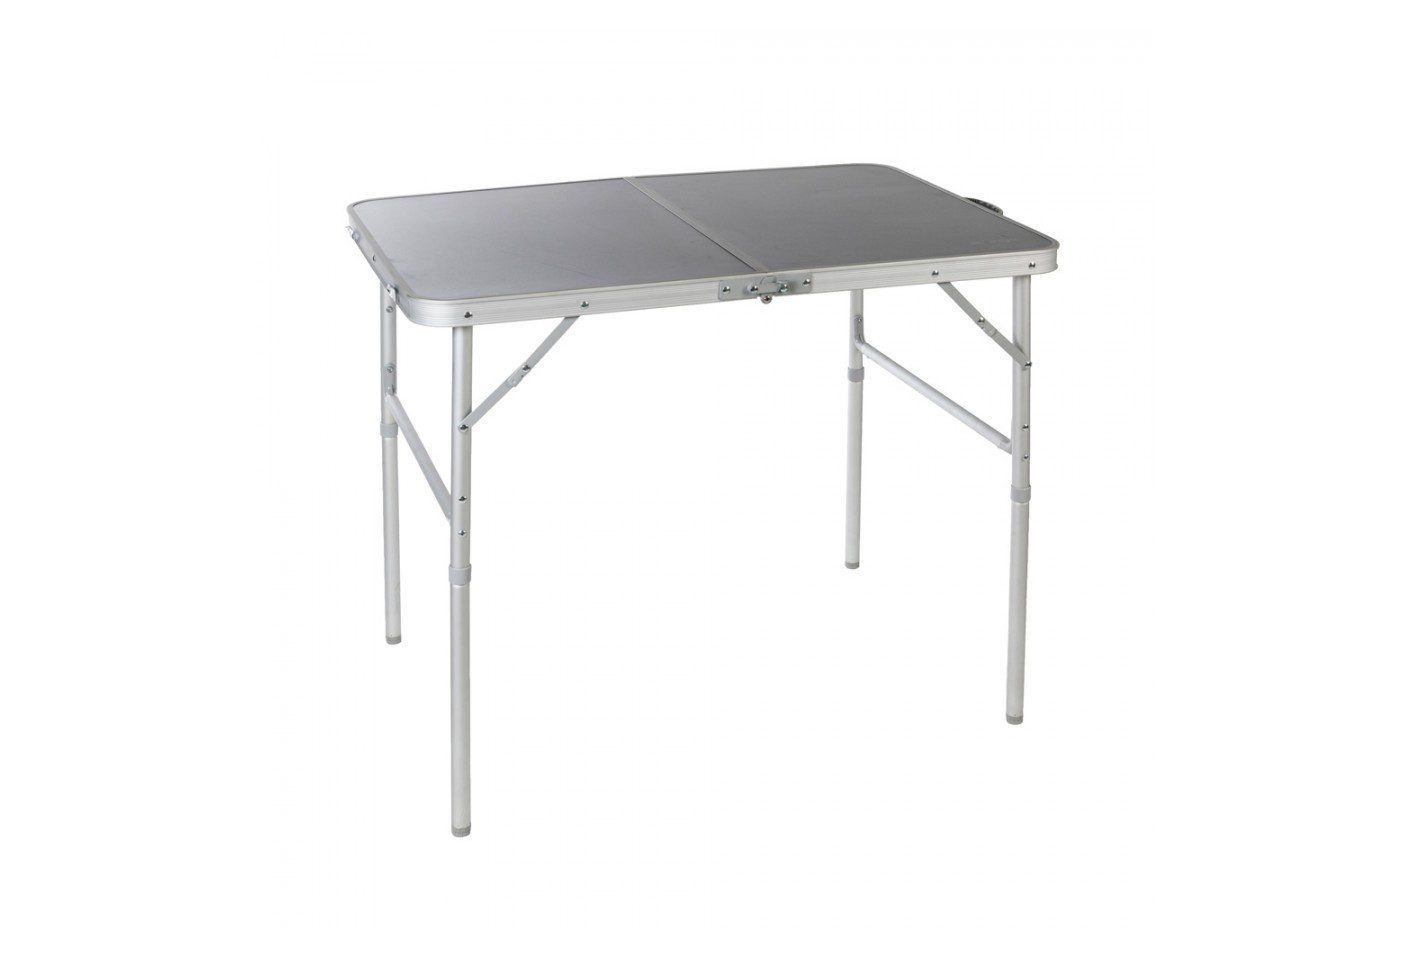 Vango Granite Duo Table 90 cm